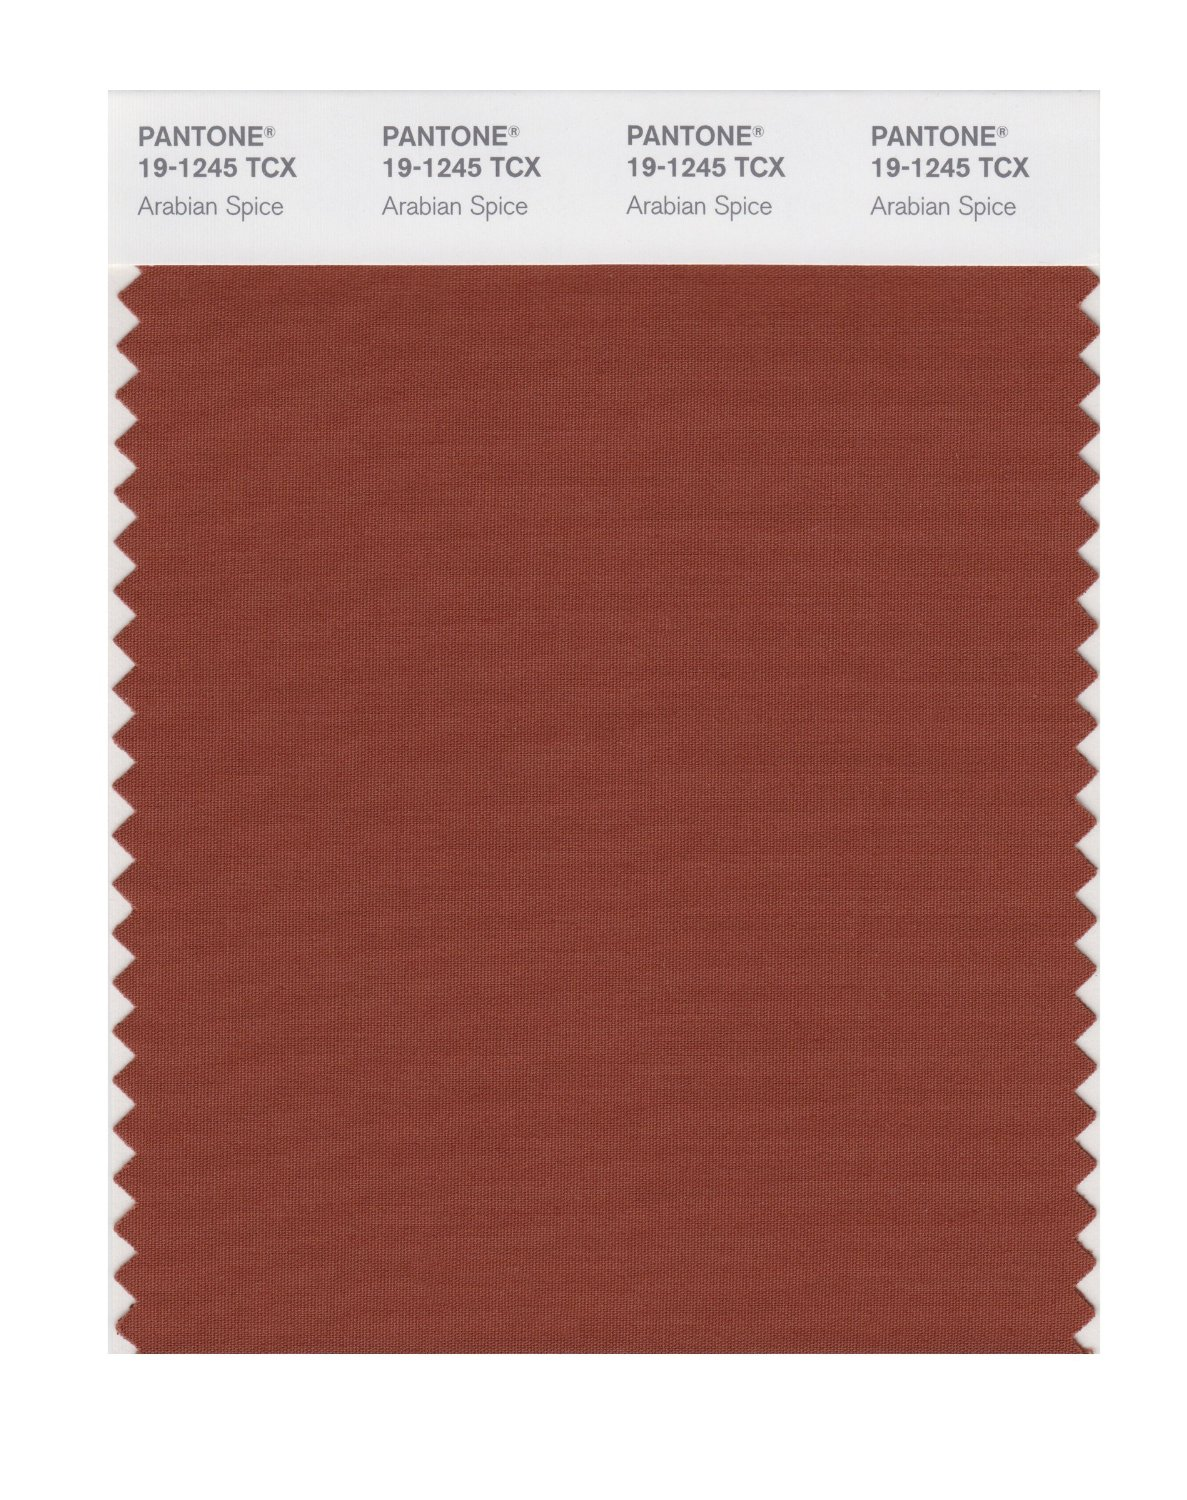 Pantone Smart Swatch 19-1245 Arabian Spice